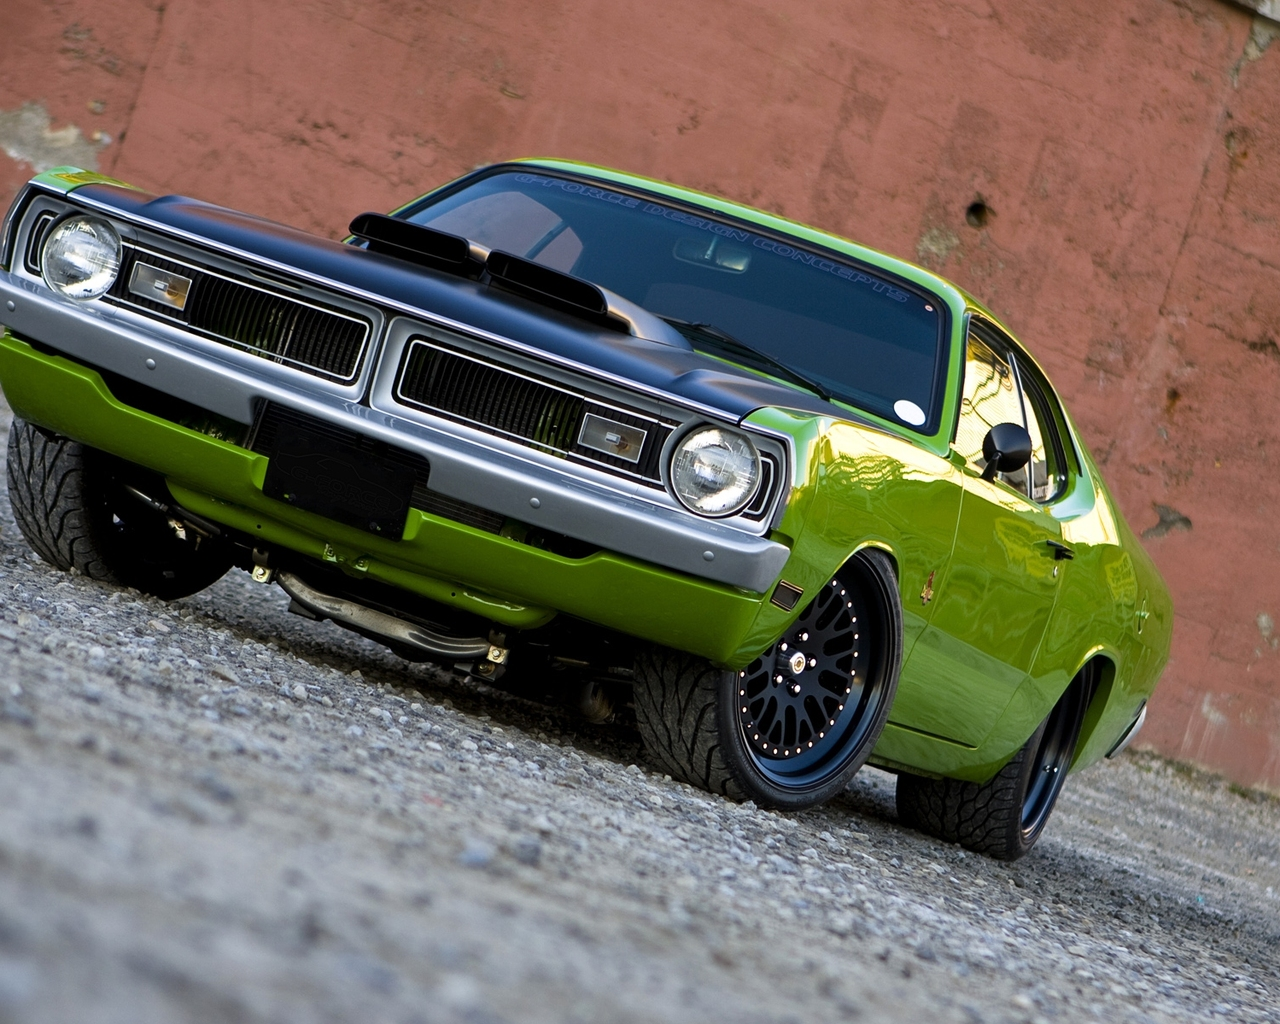 Customized 1972 Dodge Dart Demon Wallpaper 84349 Images   Frompo 1280x1024